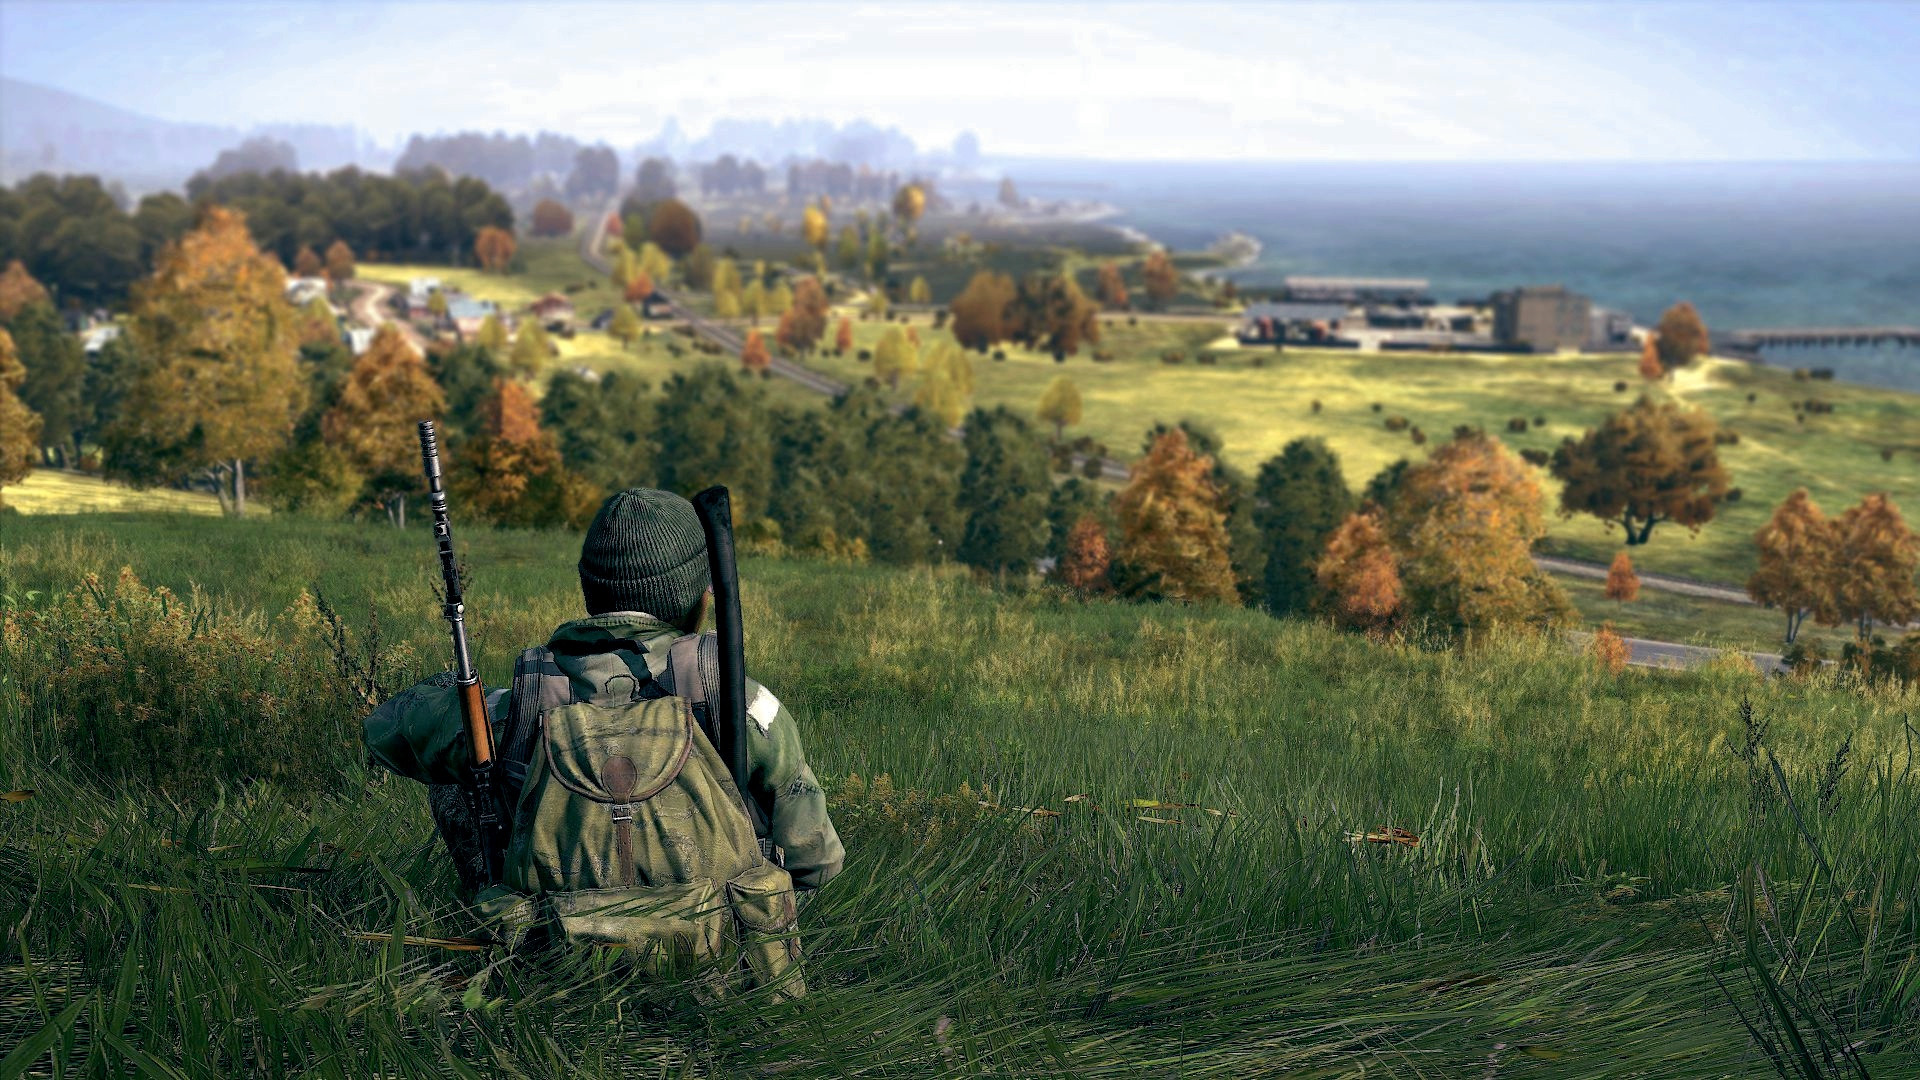 dayz-alone-on-the-hill-dayz.jpg